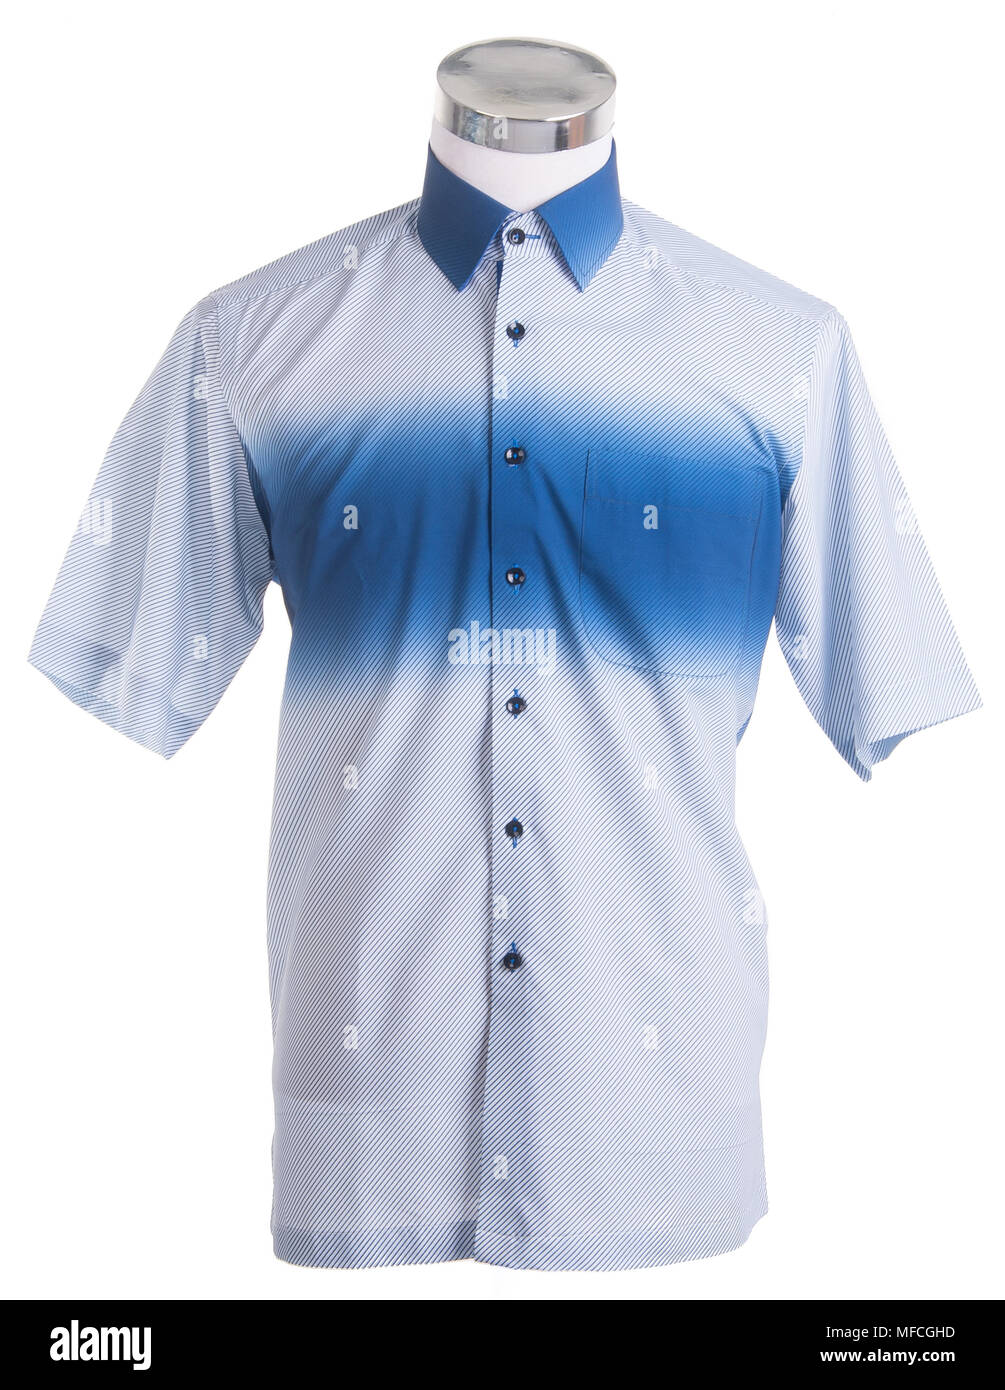 7cca0100c97f shirt. mens mannequin dressed on a background. - Stock Image